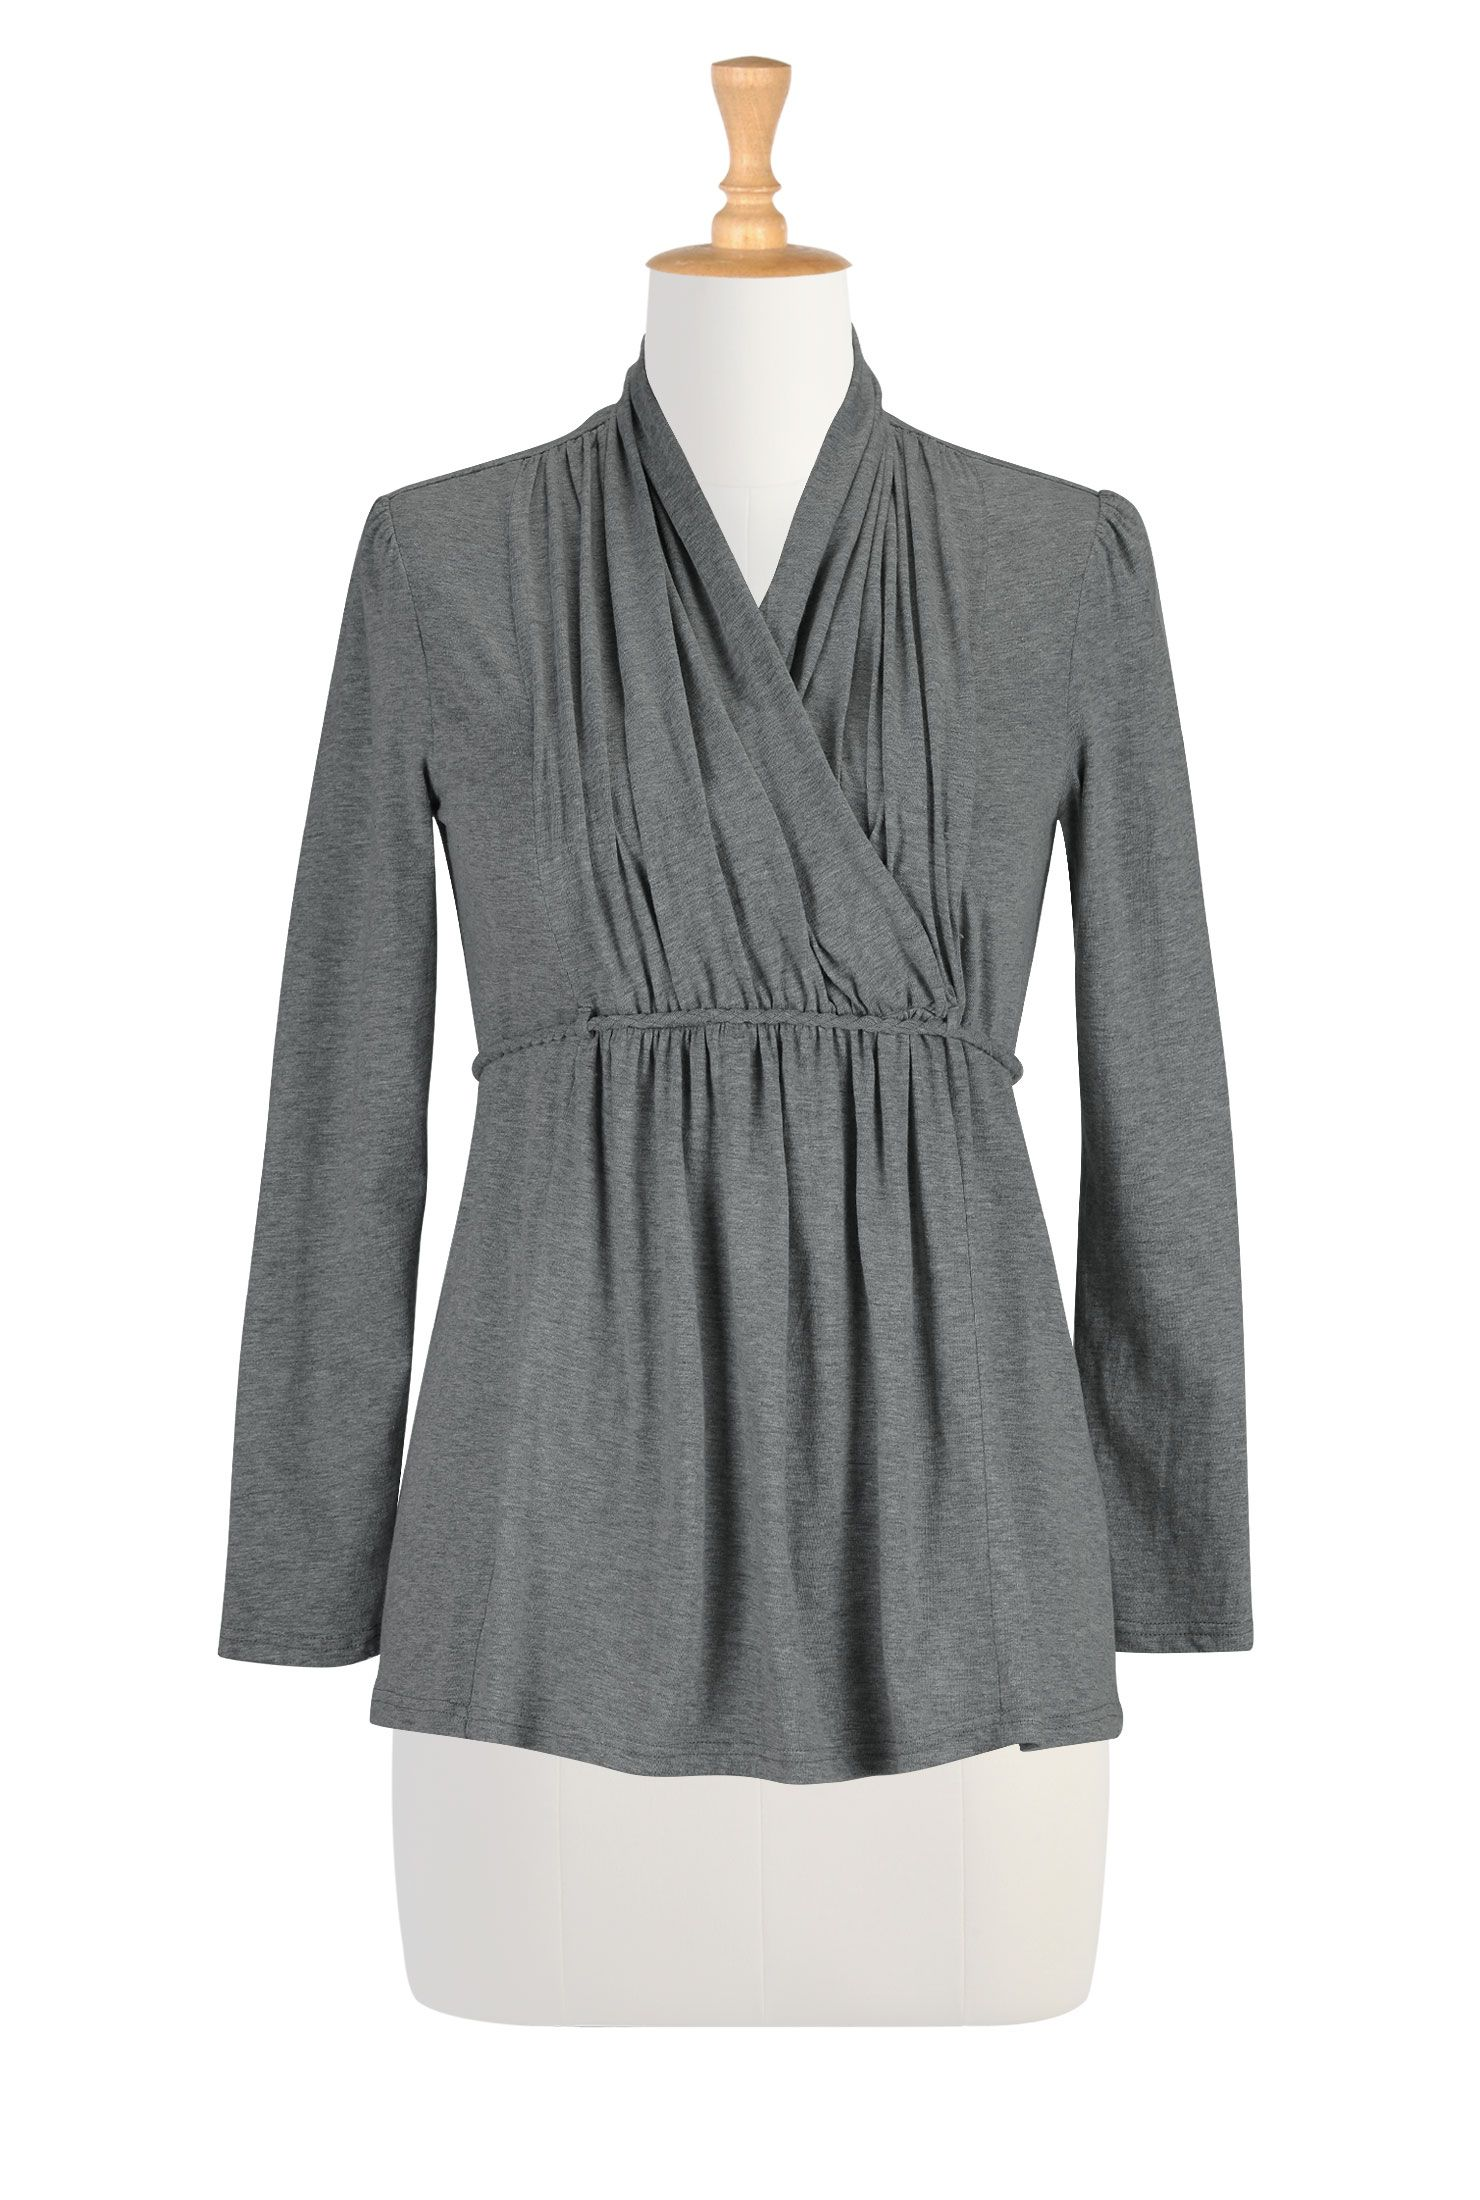 Cord tied melange knit tunic | Embellished top, Tunics and Clothes